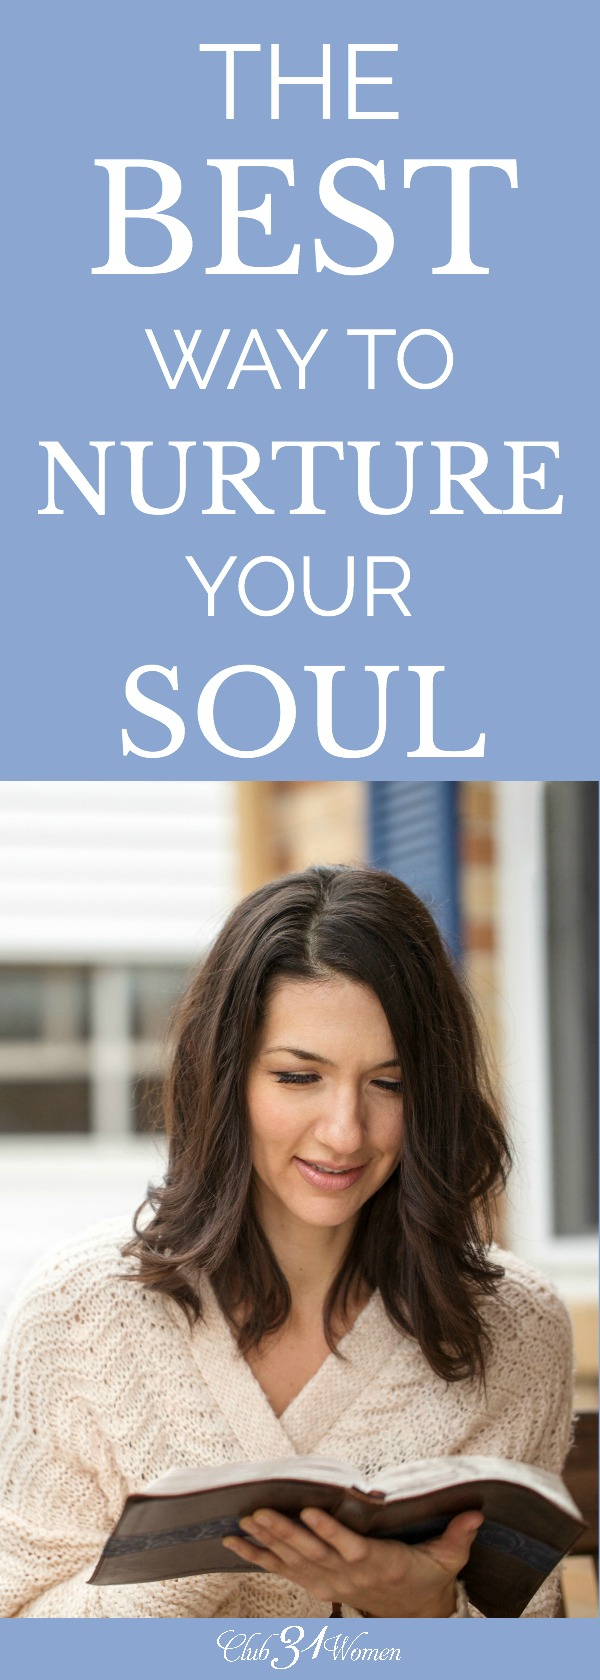 What is the best way to nurture your soul? How can you have the deepest desires of your heart fulfilled when you feel so empty? Lost? Alone? via @Club31Women